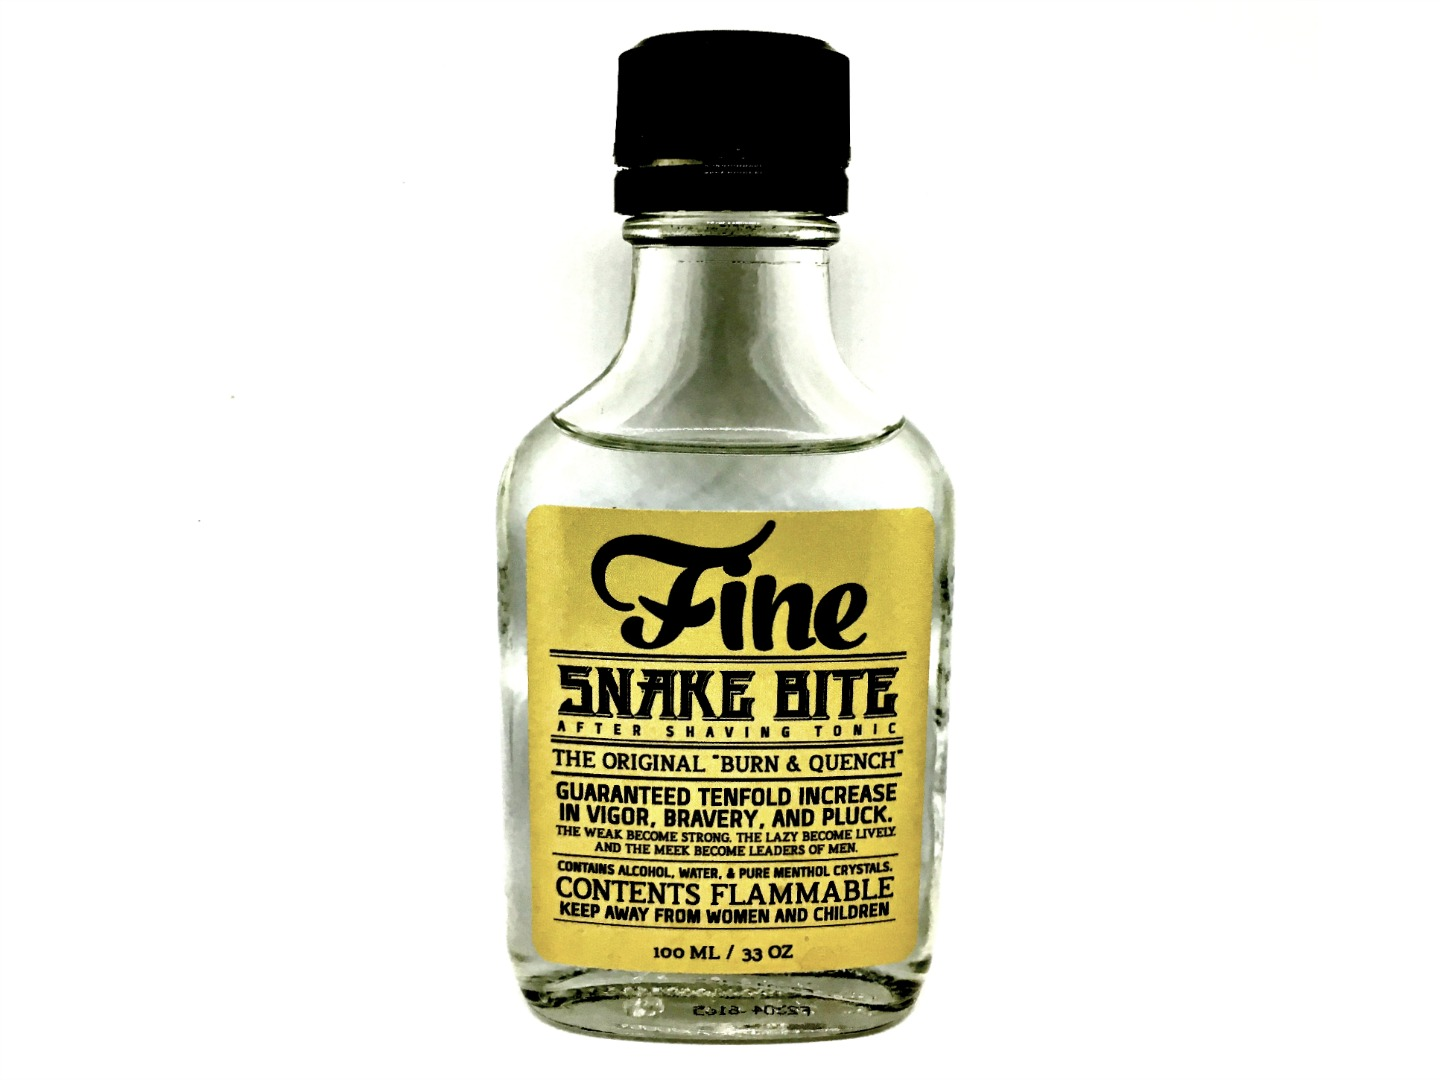 Fine Snake Bite After Shaving Tonic Review